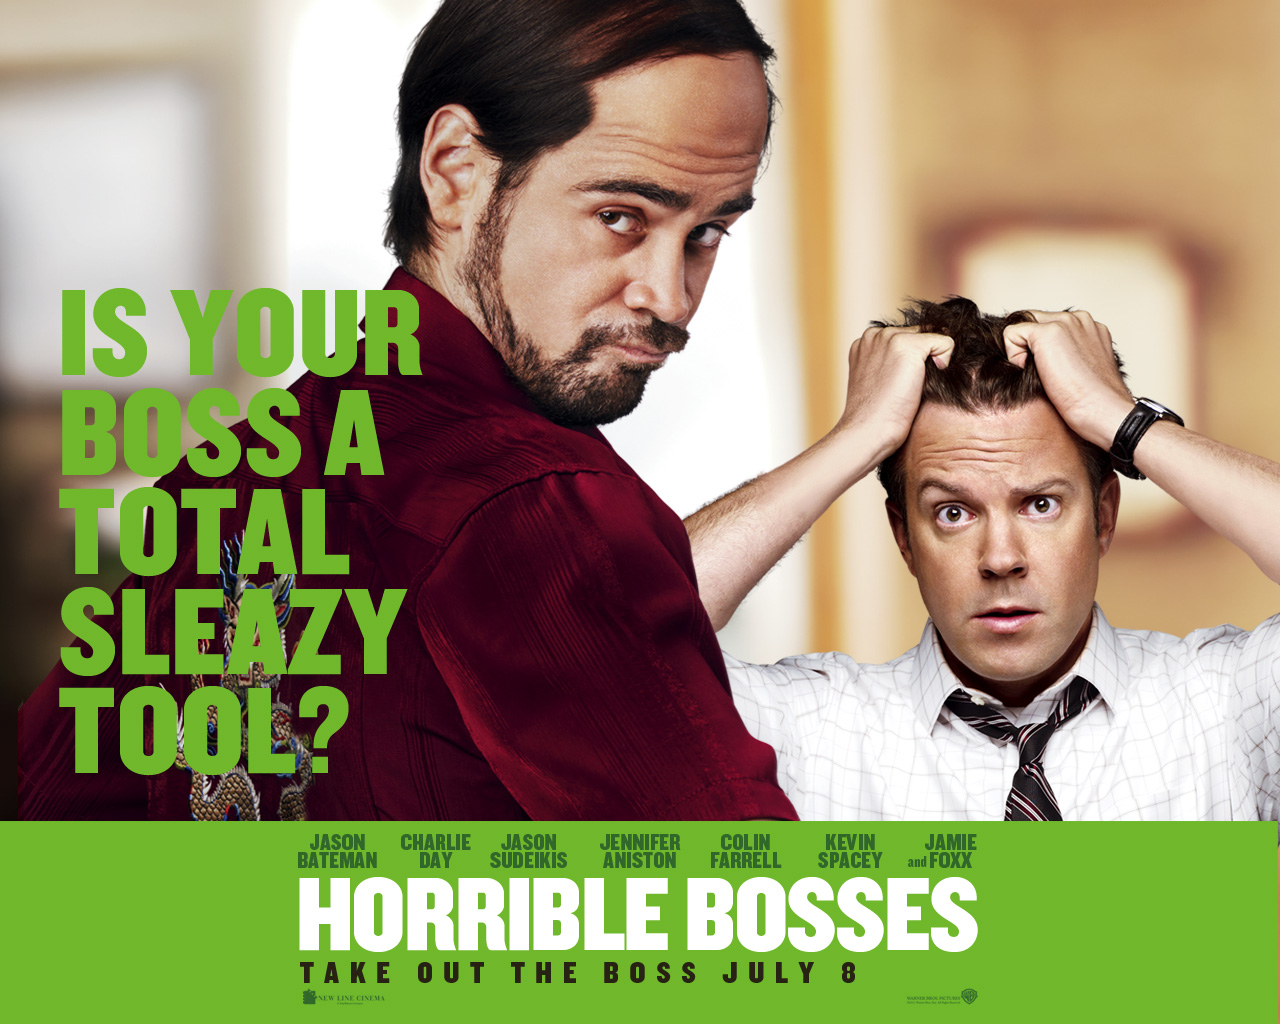 http://1.bp.blogspot.com/-n4GjXh8biB8/TjVz_362S8I/AAAAAAAACGc/VCf5sr3wO8k/s1600/Colin_Farrell_in_Horrible_Bosses_Wallpaper_3_1024.jpg